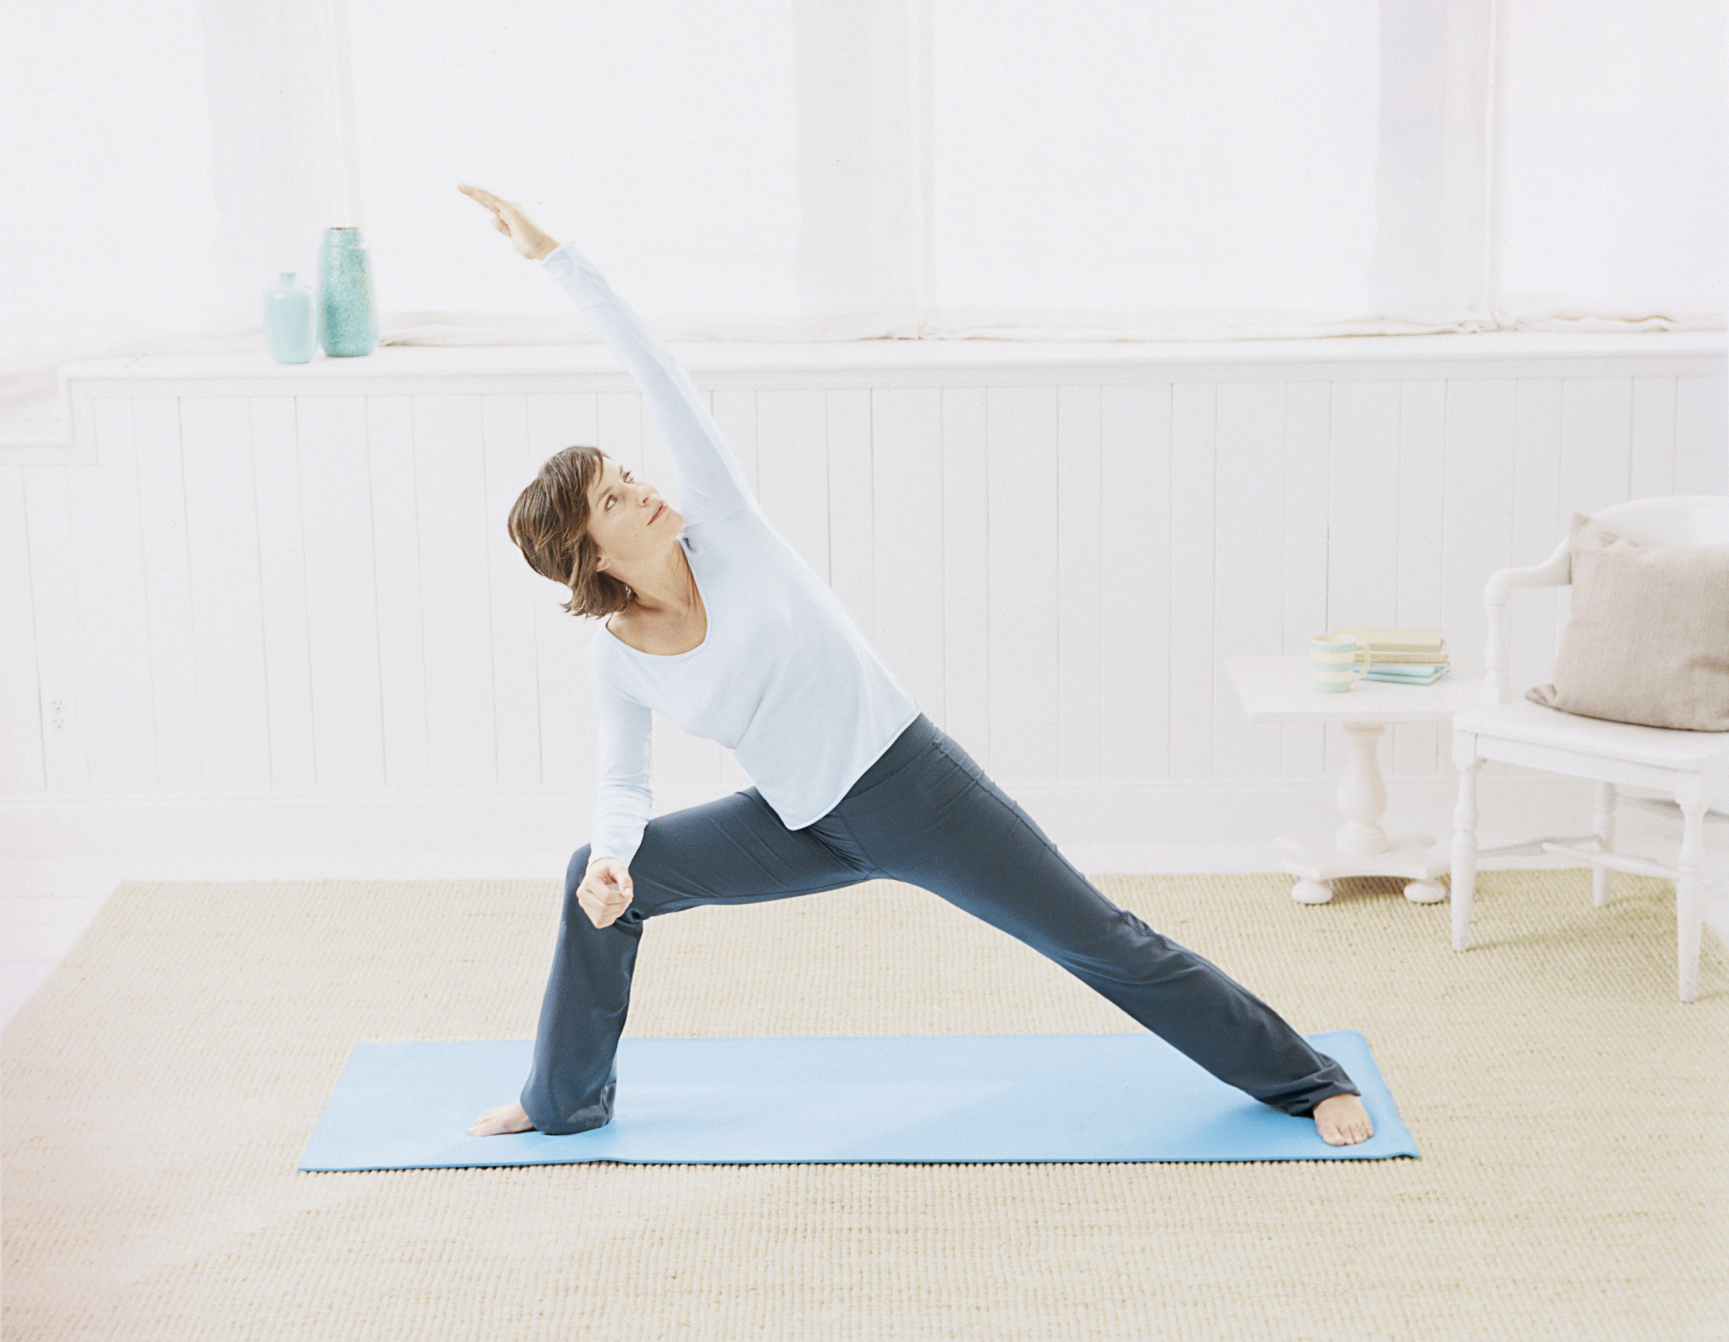 The Yoga Workout